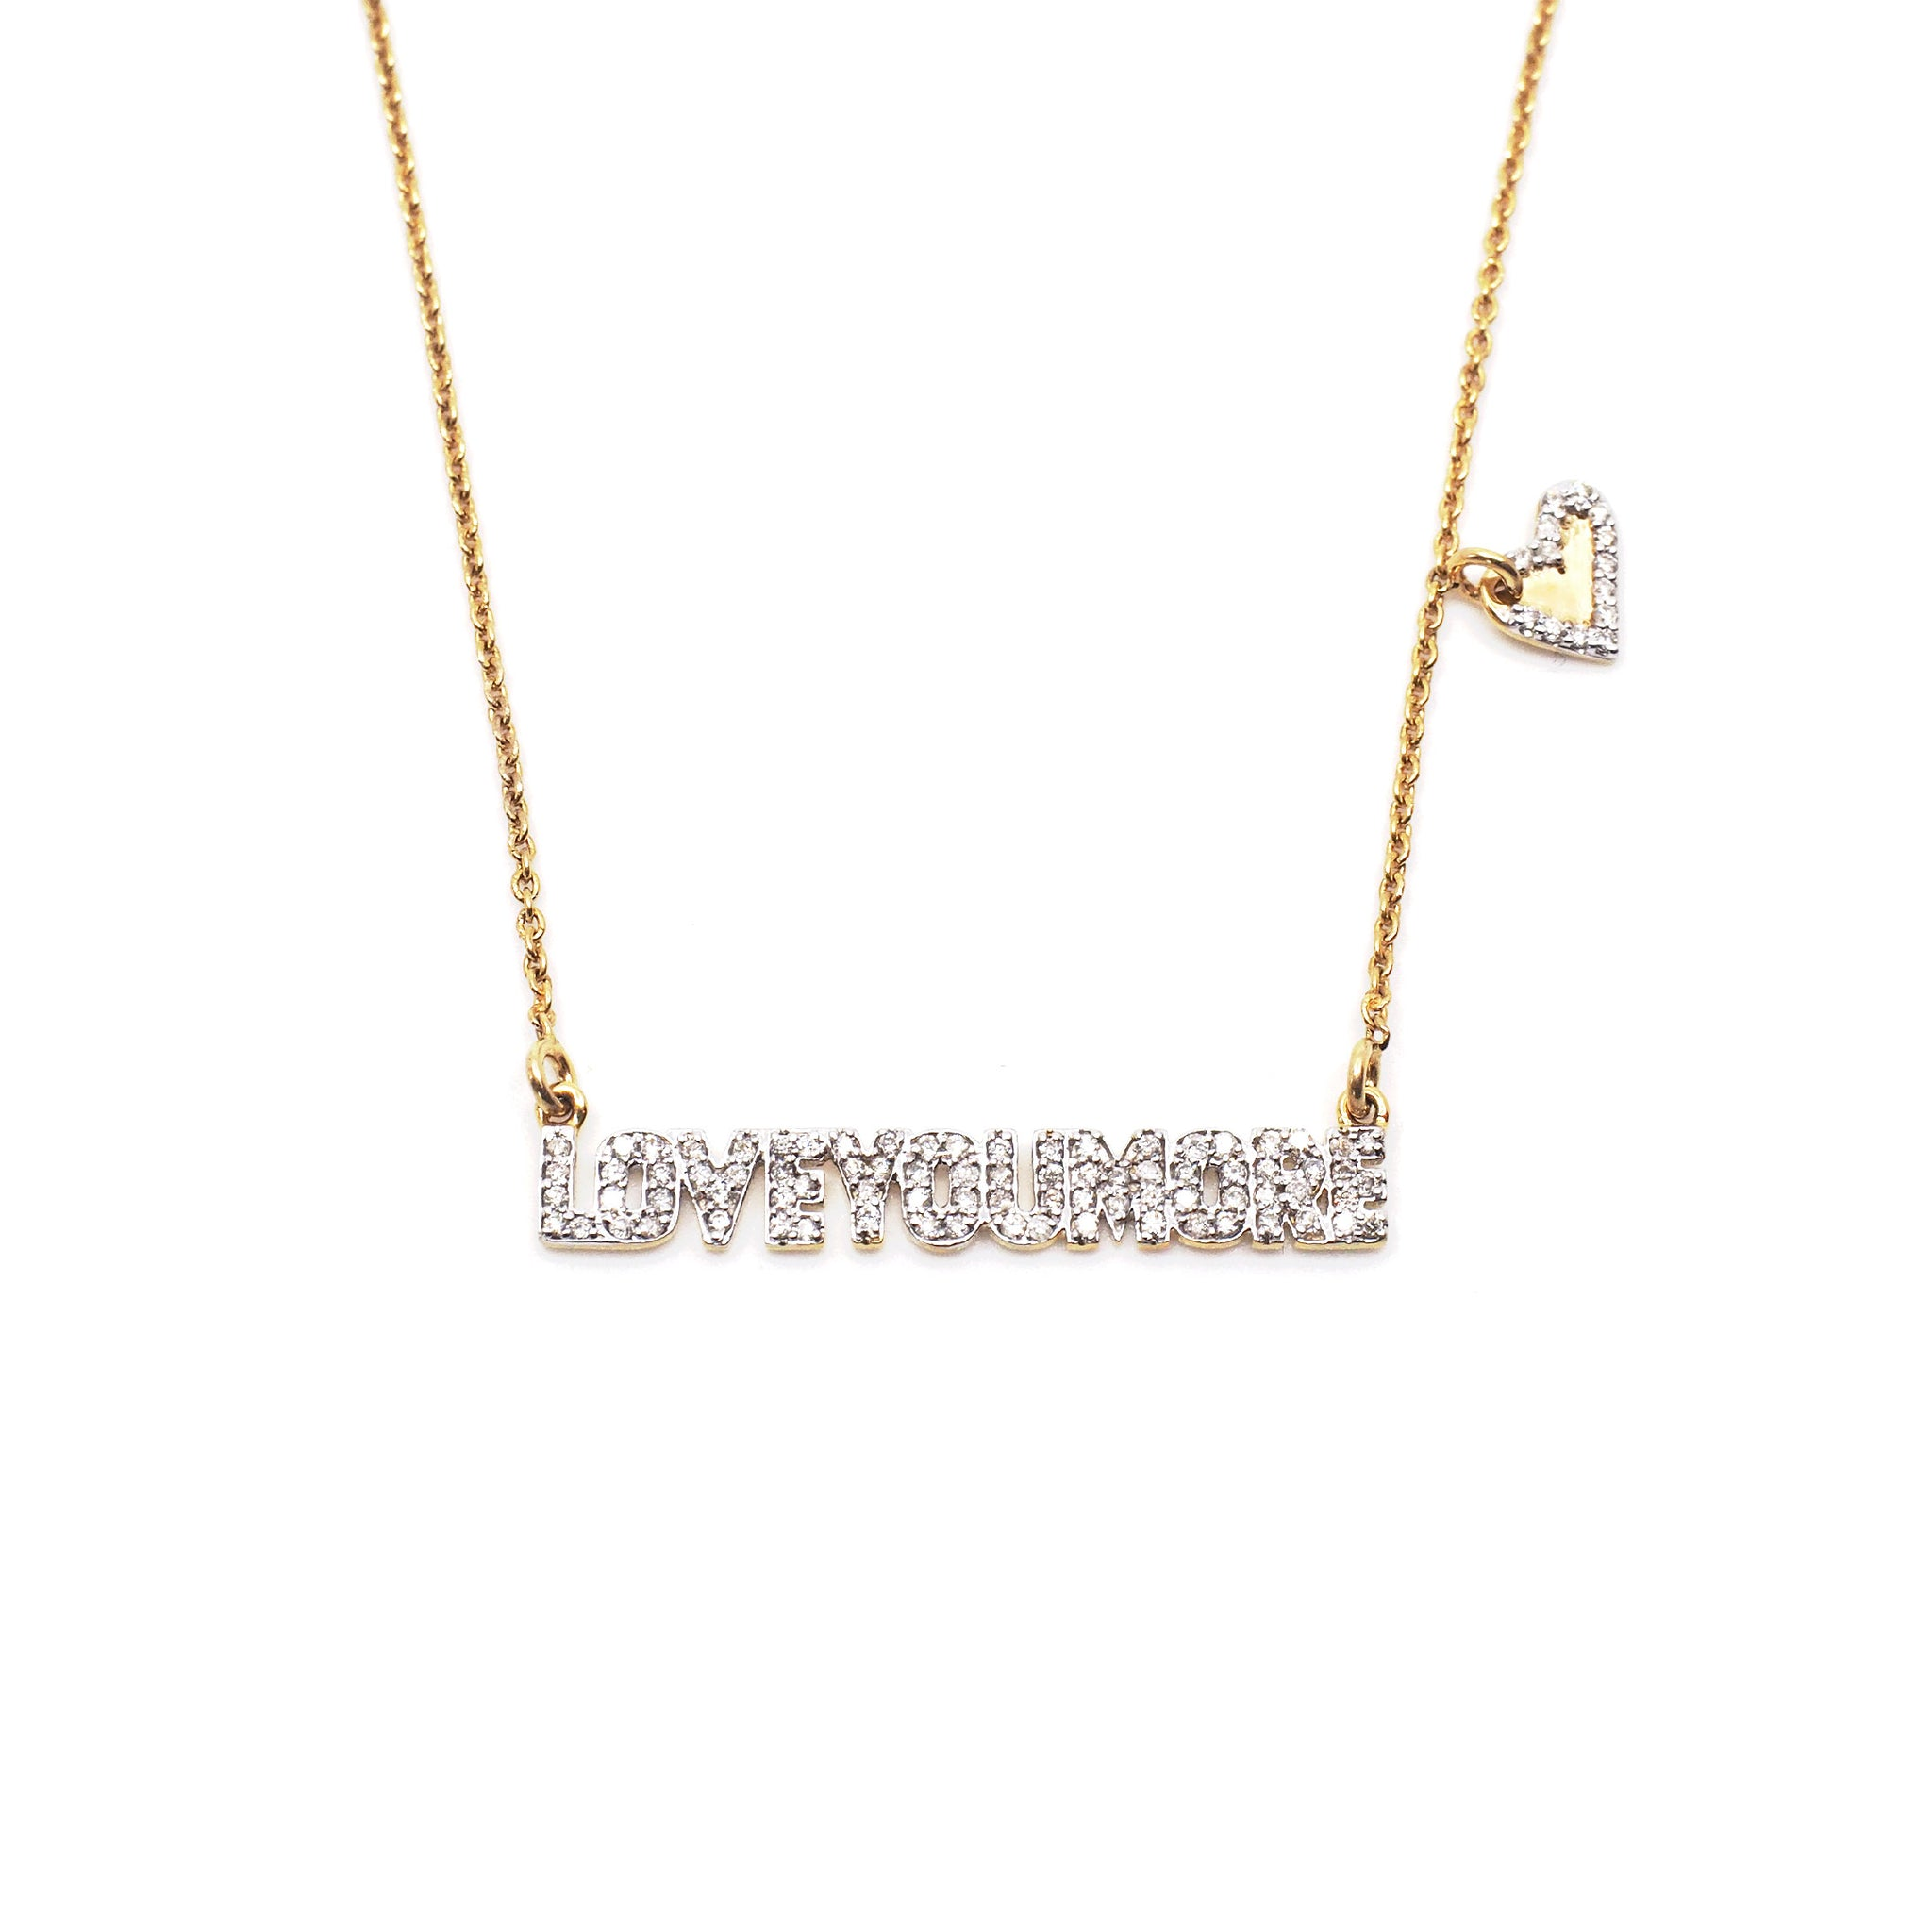 The Love Bar Necklace in White Diamond & 14K Gold